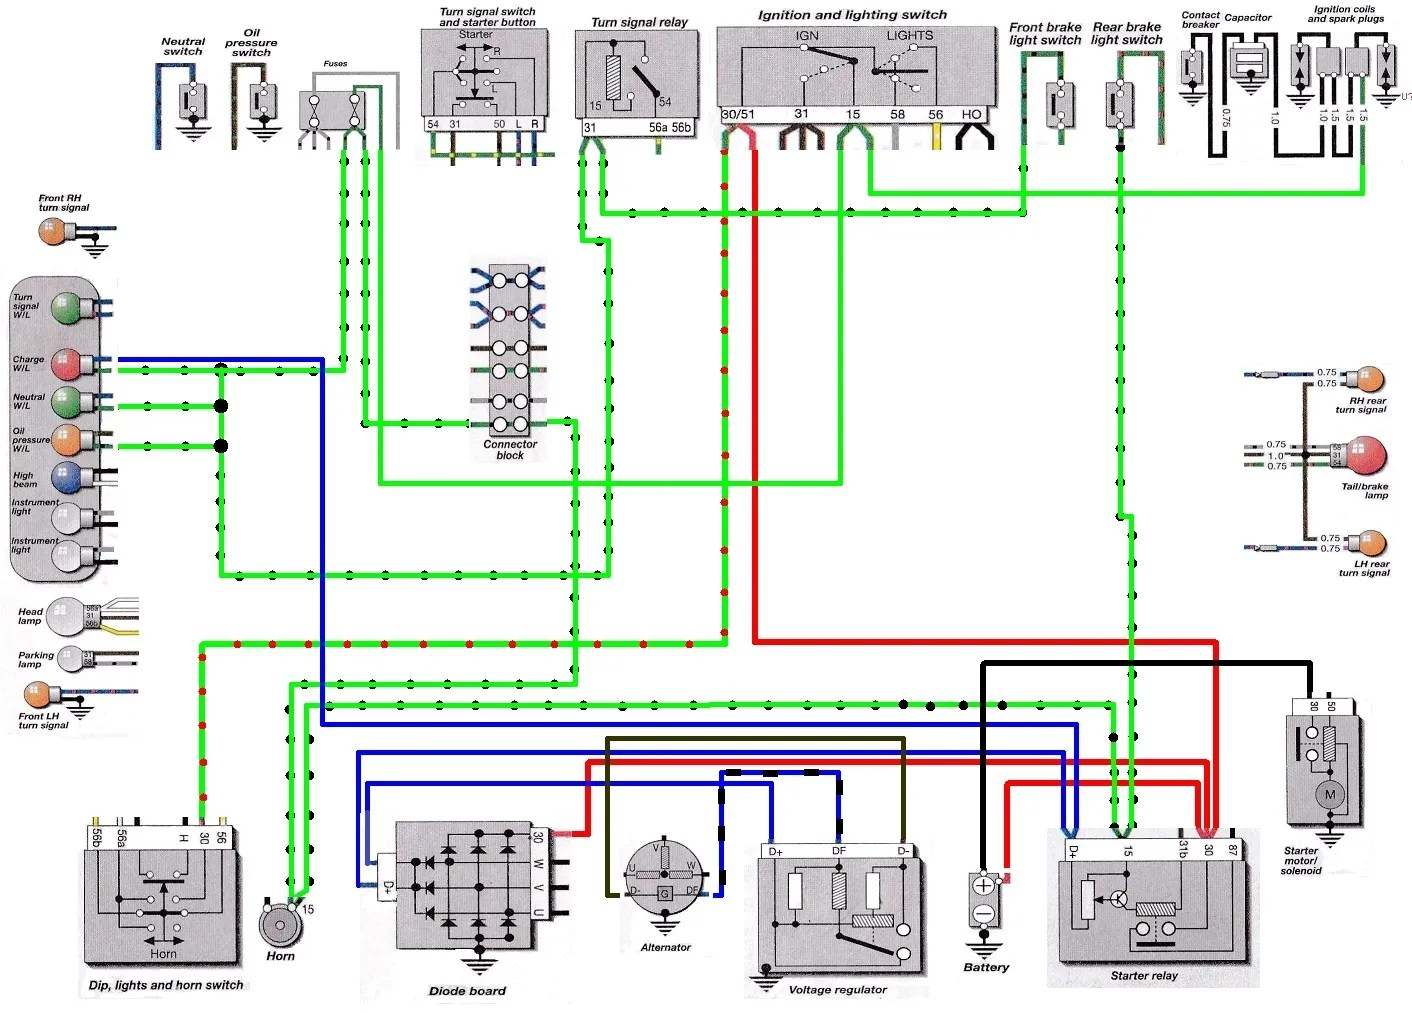 hight resolution of 5 series partial wiring diagram showing blue wires from charge indicator lamp that create path to ground at starter relay terminal d click to enlarge